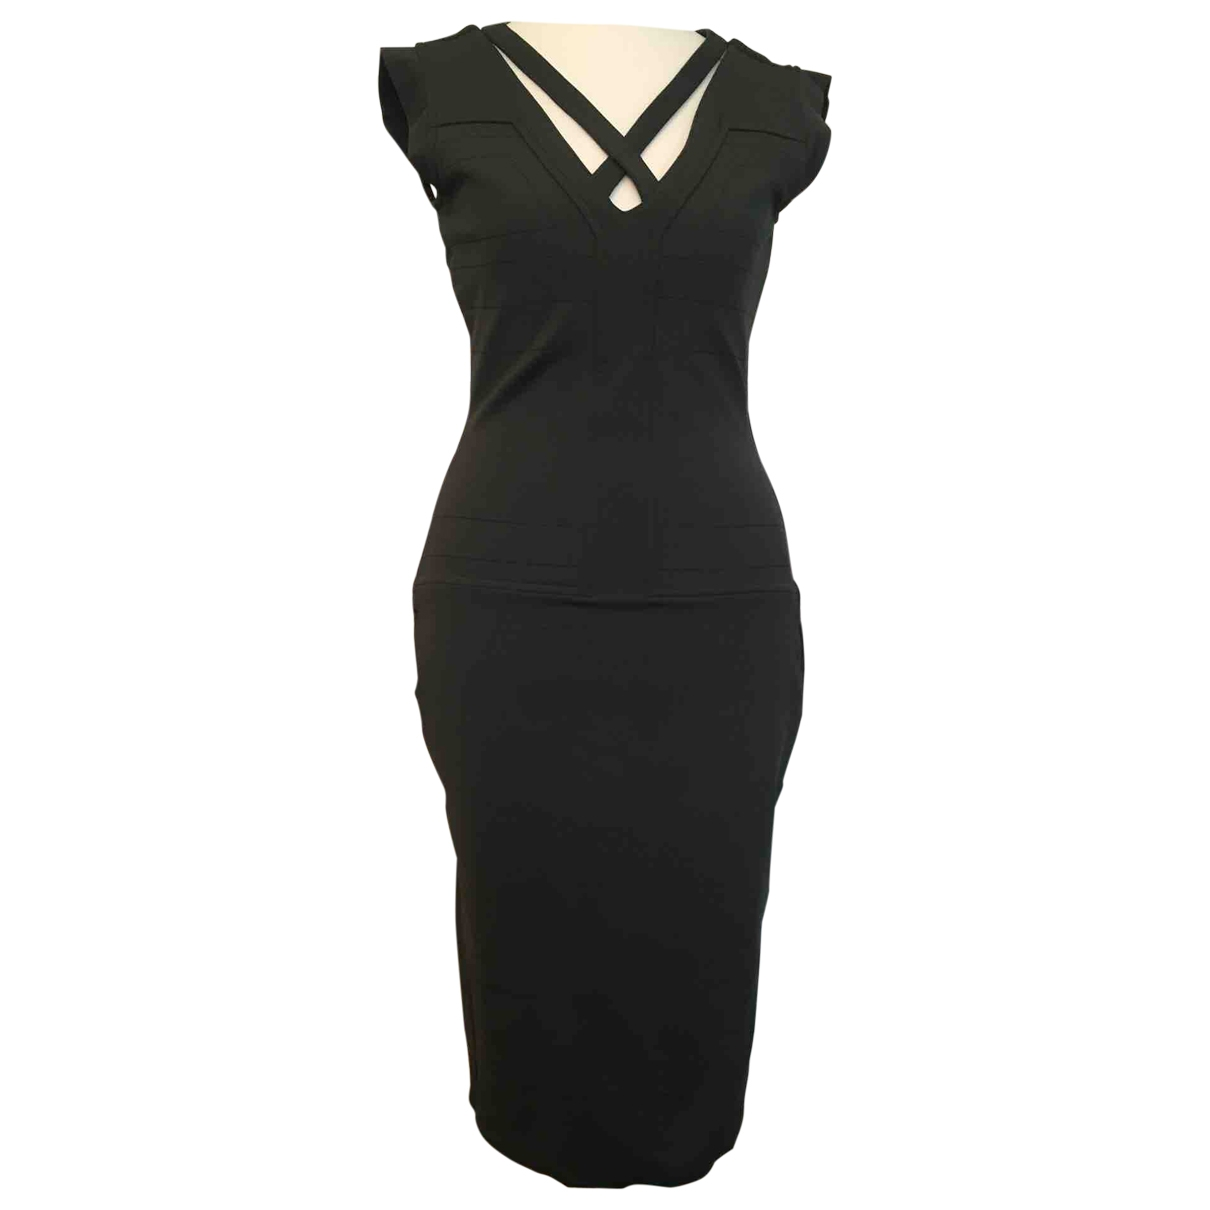 French Connection \N Green dress for Women 10 UK